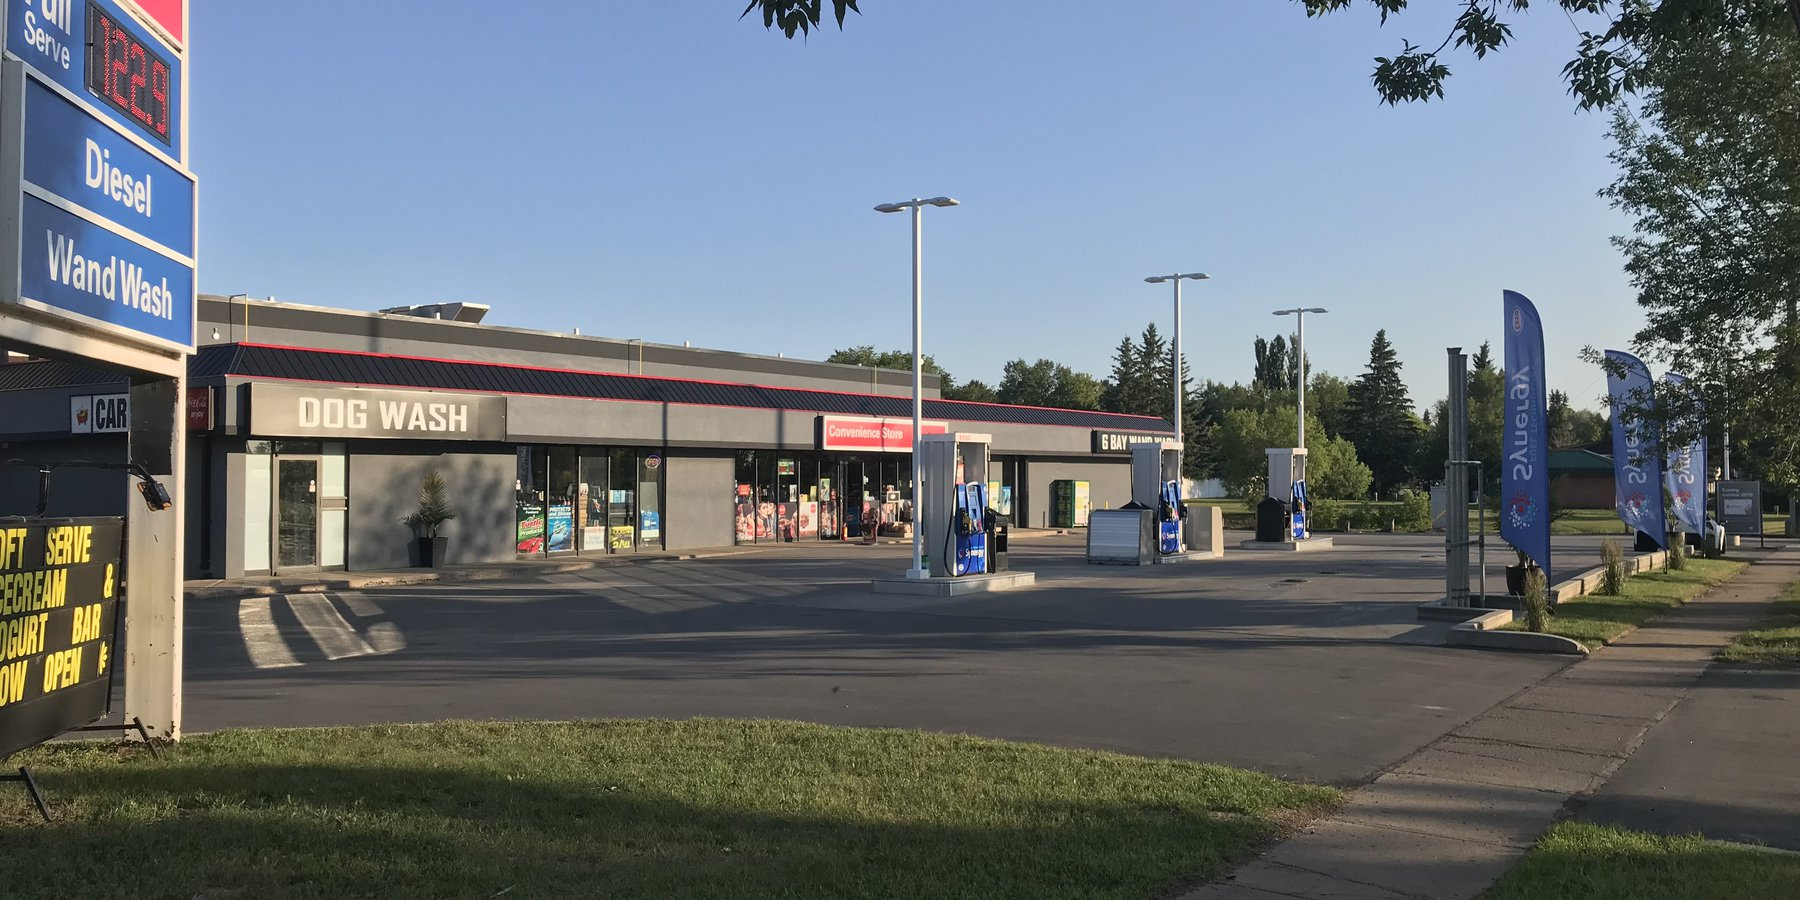 East esso store front.jpg